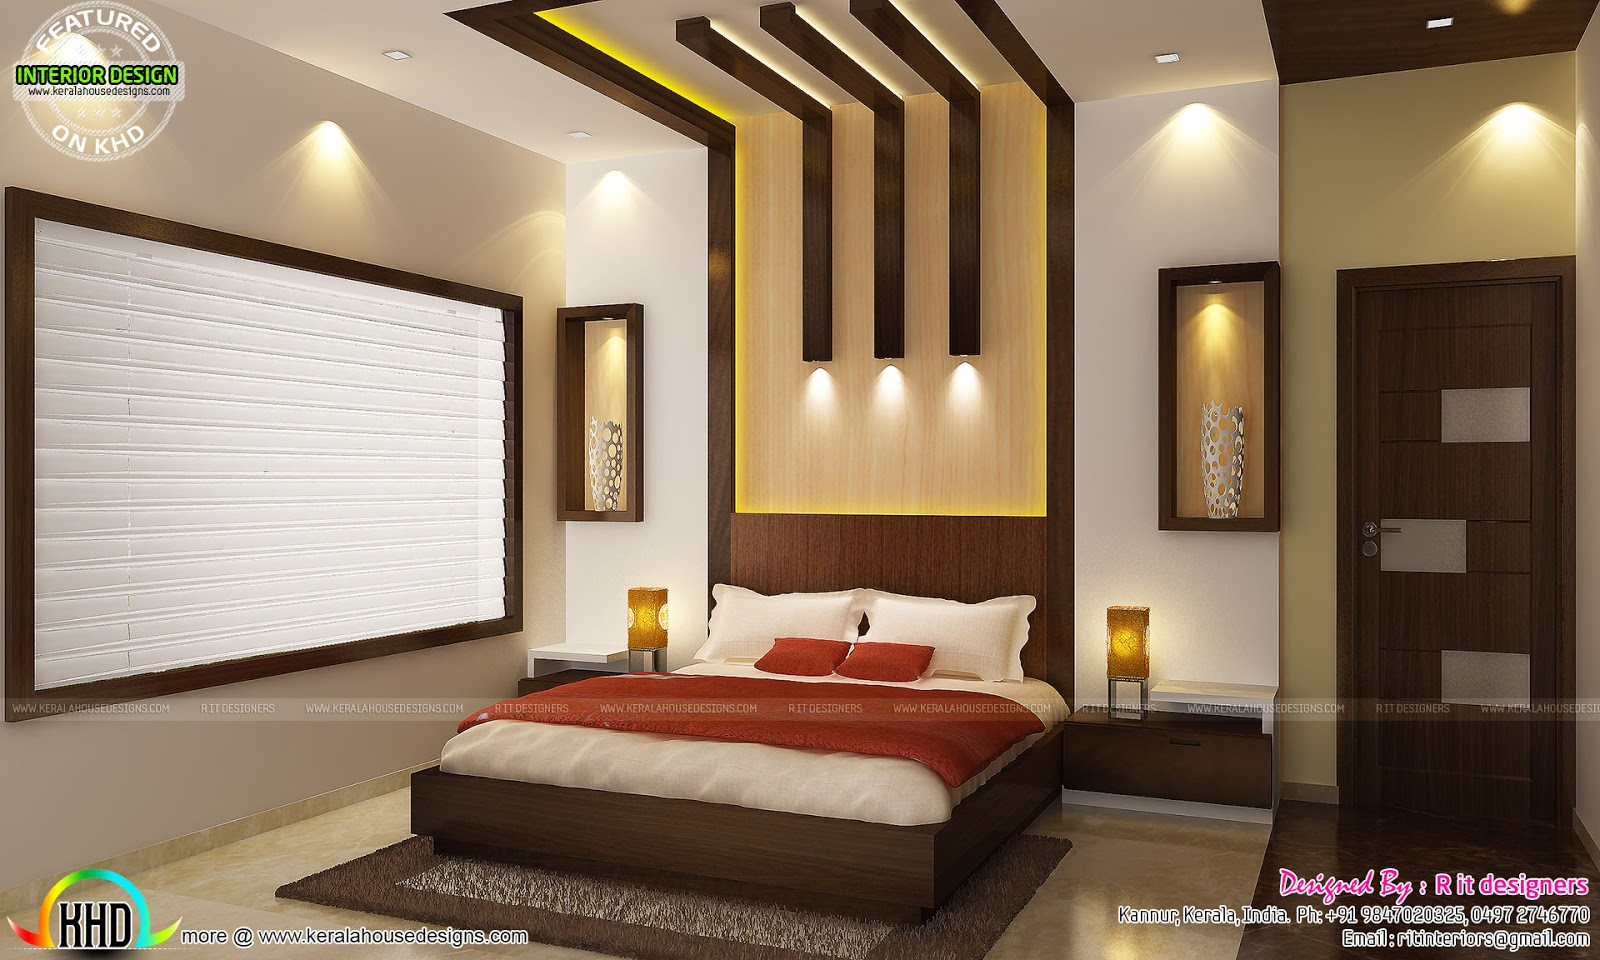 Kitchen Living Bedroom Dining Interior Decor Kerala Home Design And Floor Plans